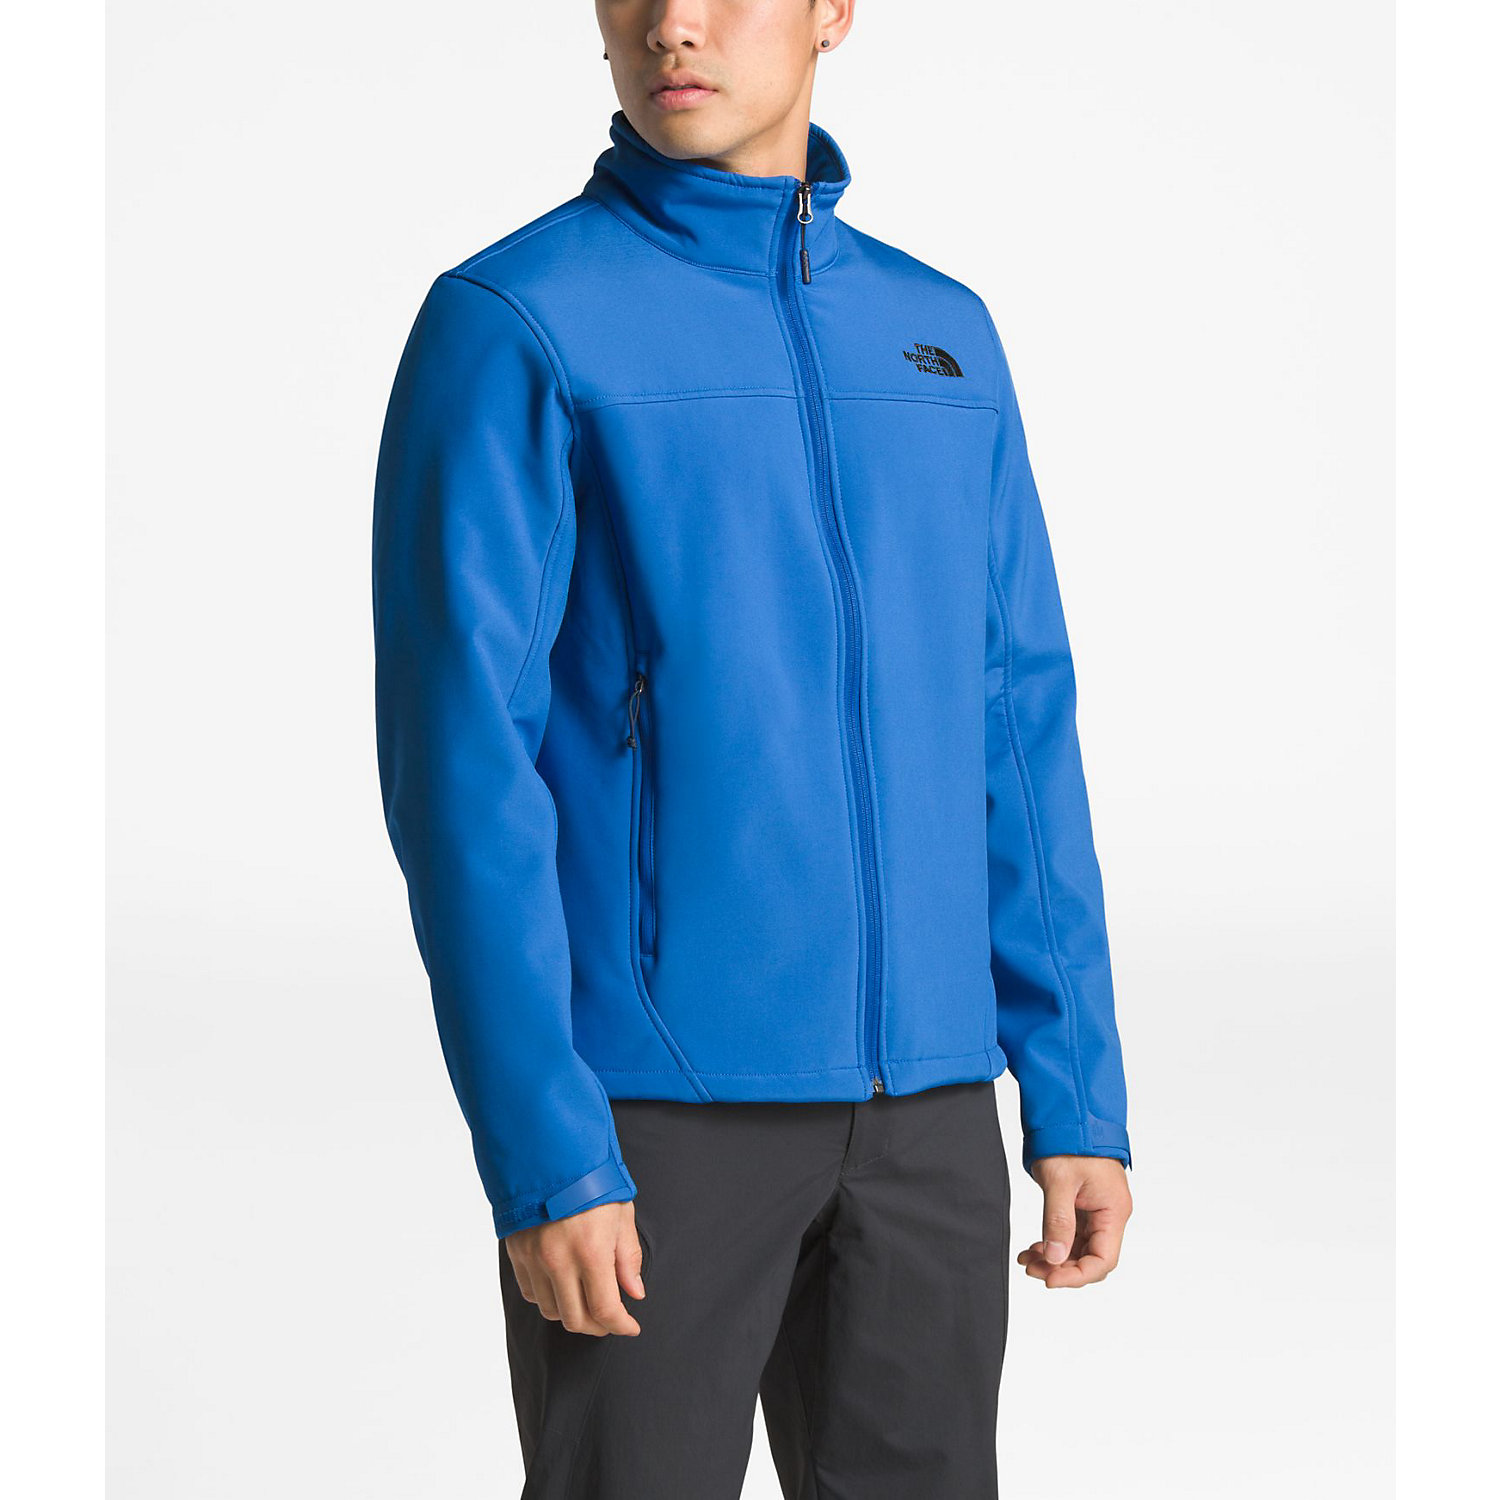 29bcb6a8c The North Face Men's Apex Chromium Thermal Jacket